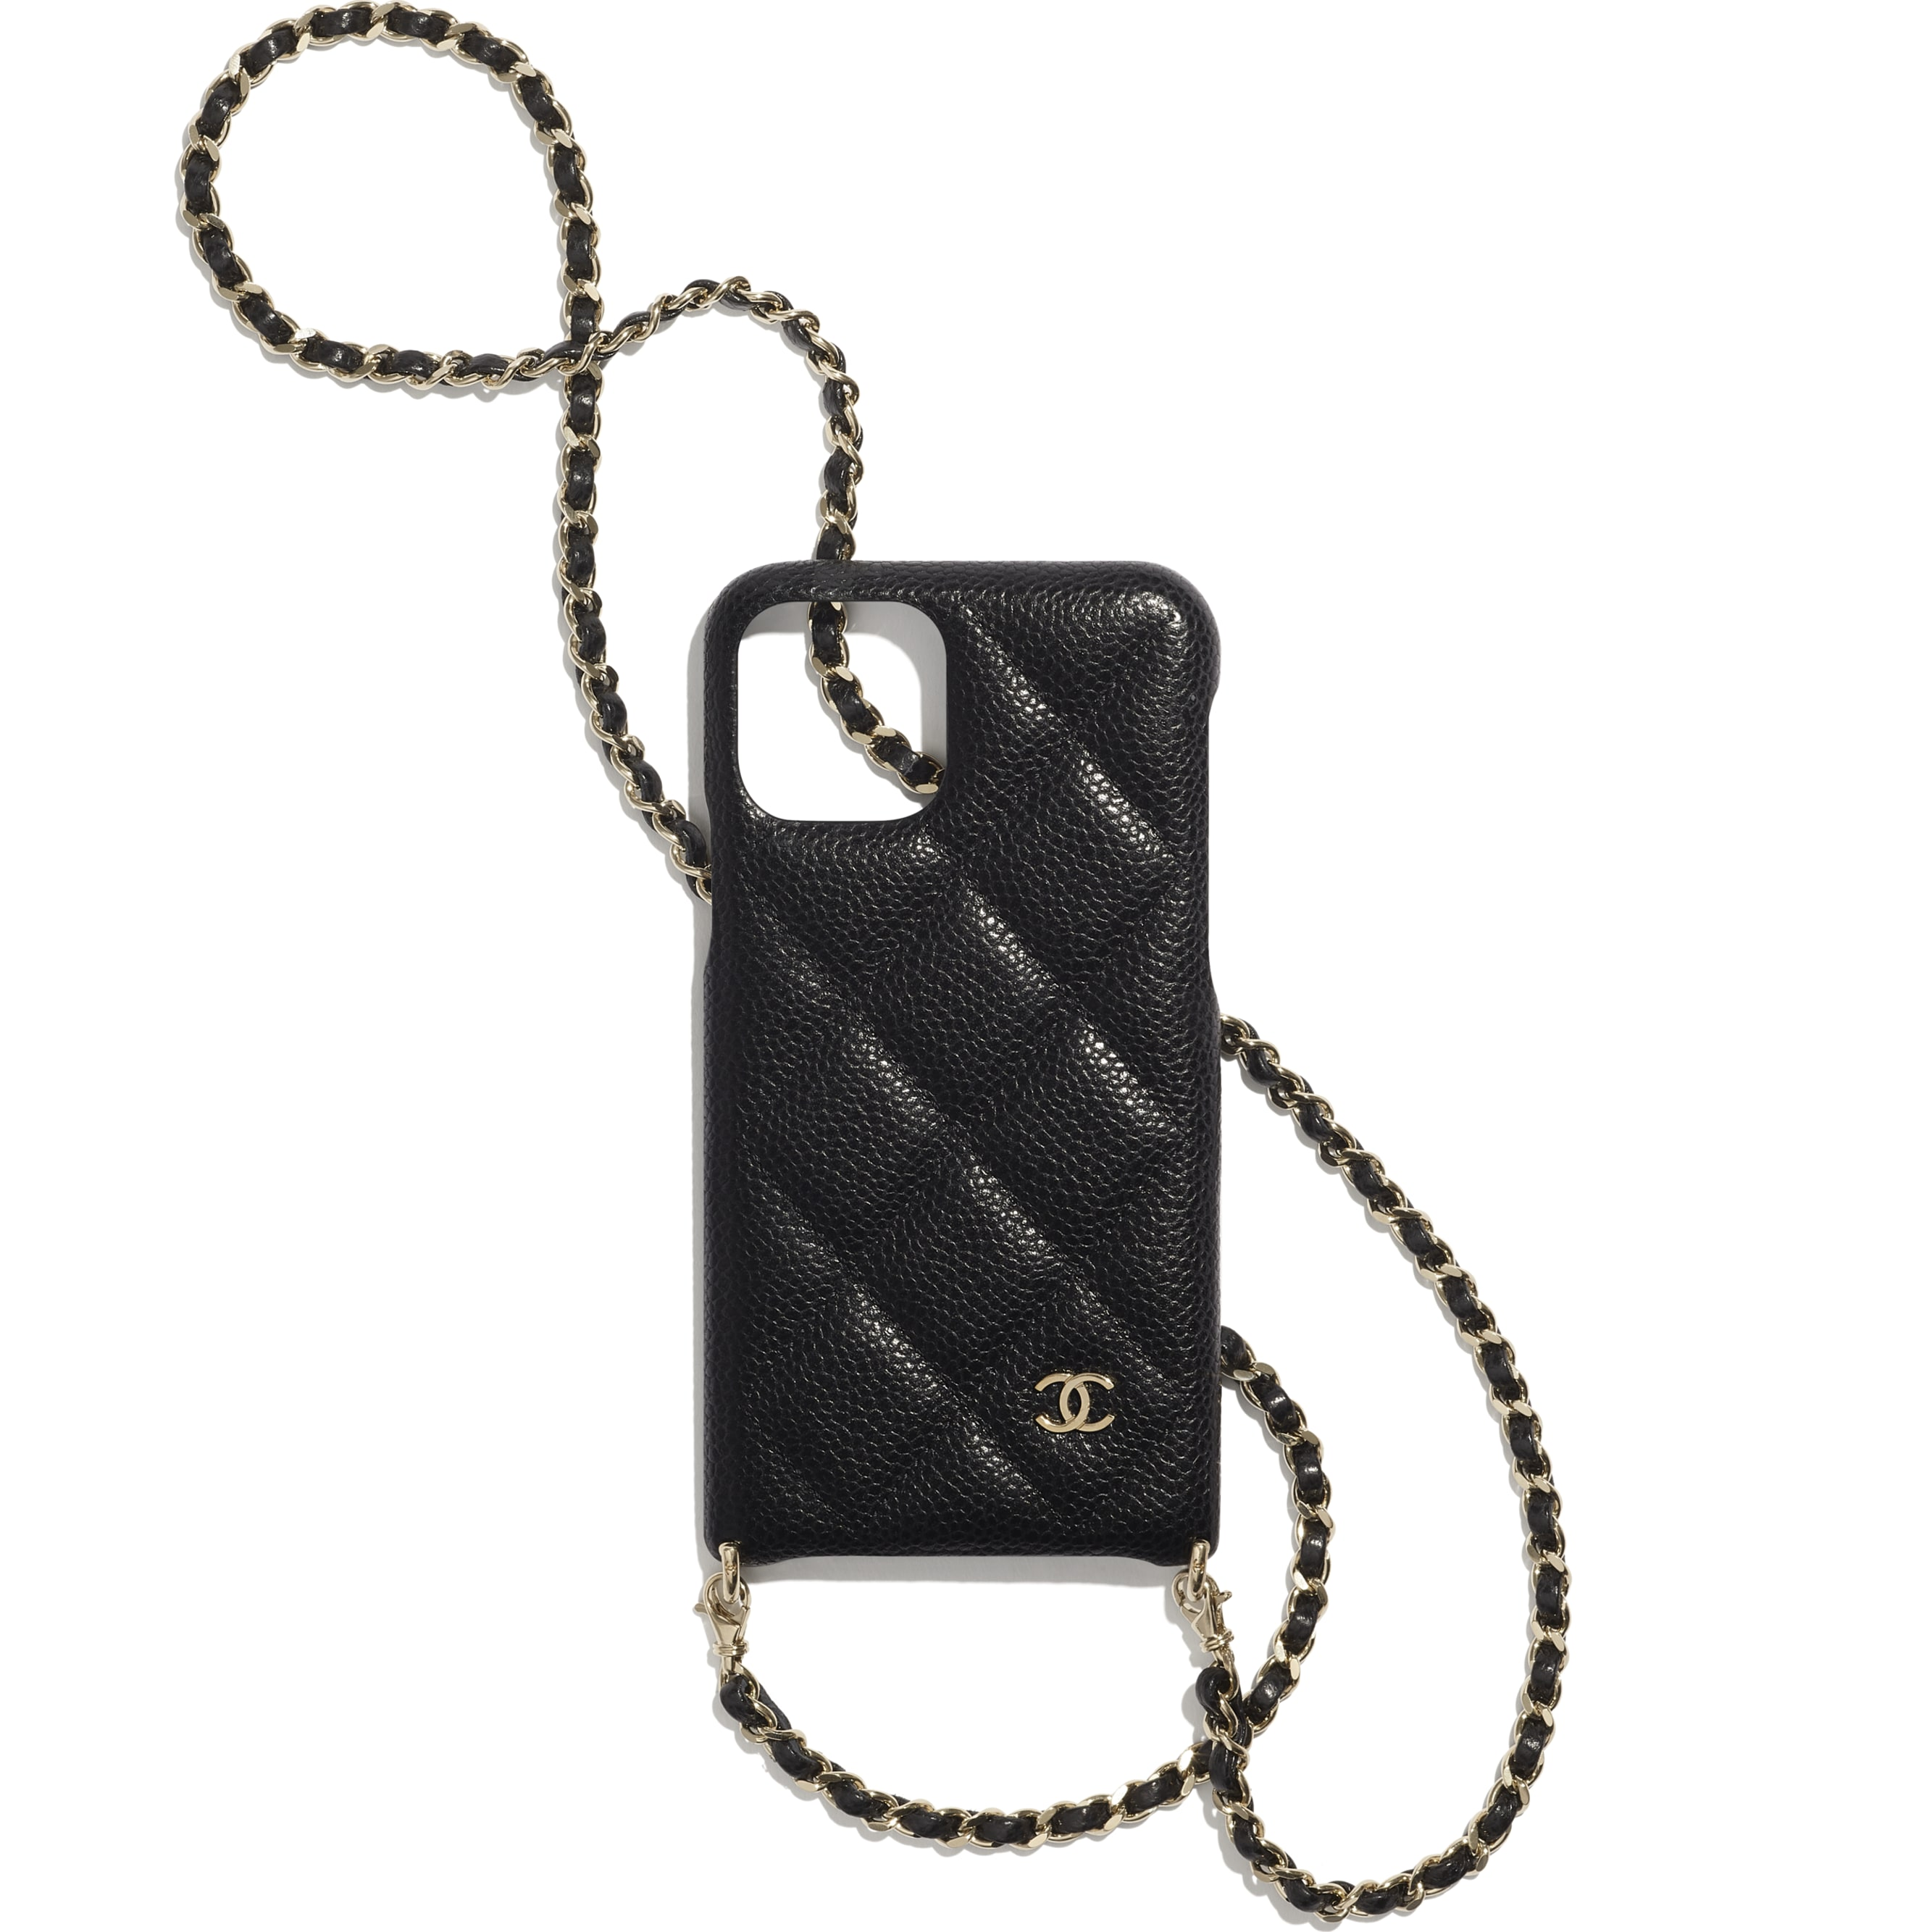 Case for iPhone XI Pro with Chain - Black - Grained Lambskin & Gold-Tone Metal - CHANEL - Default view - see standard sized version